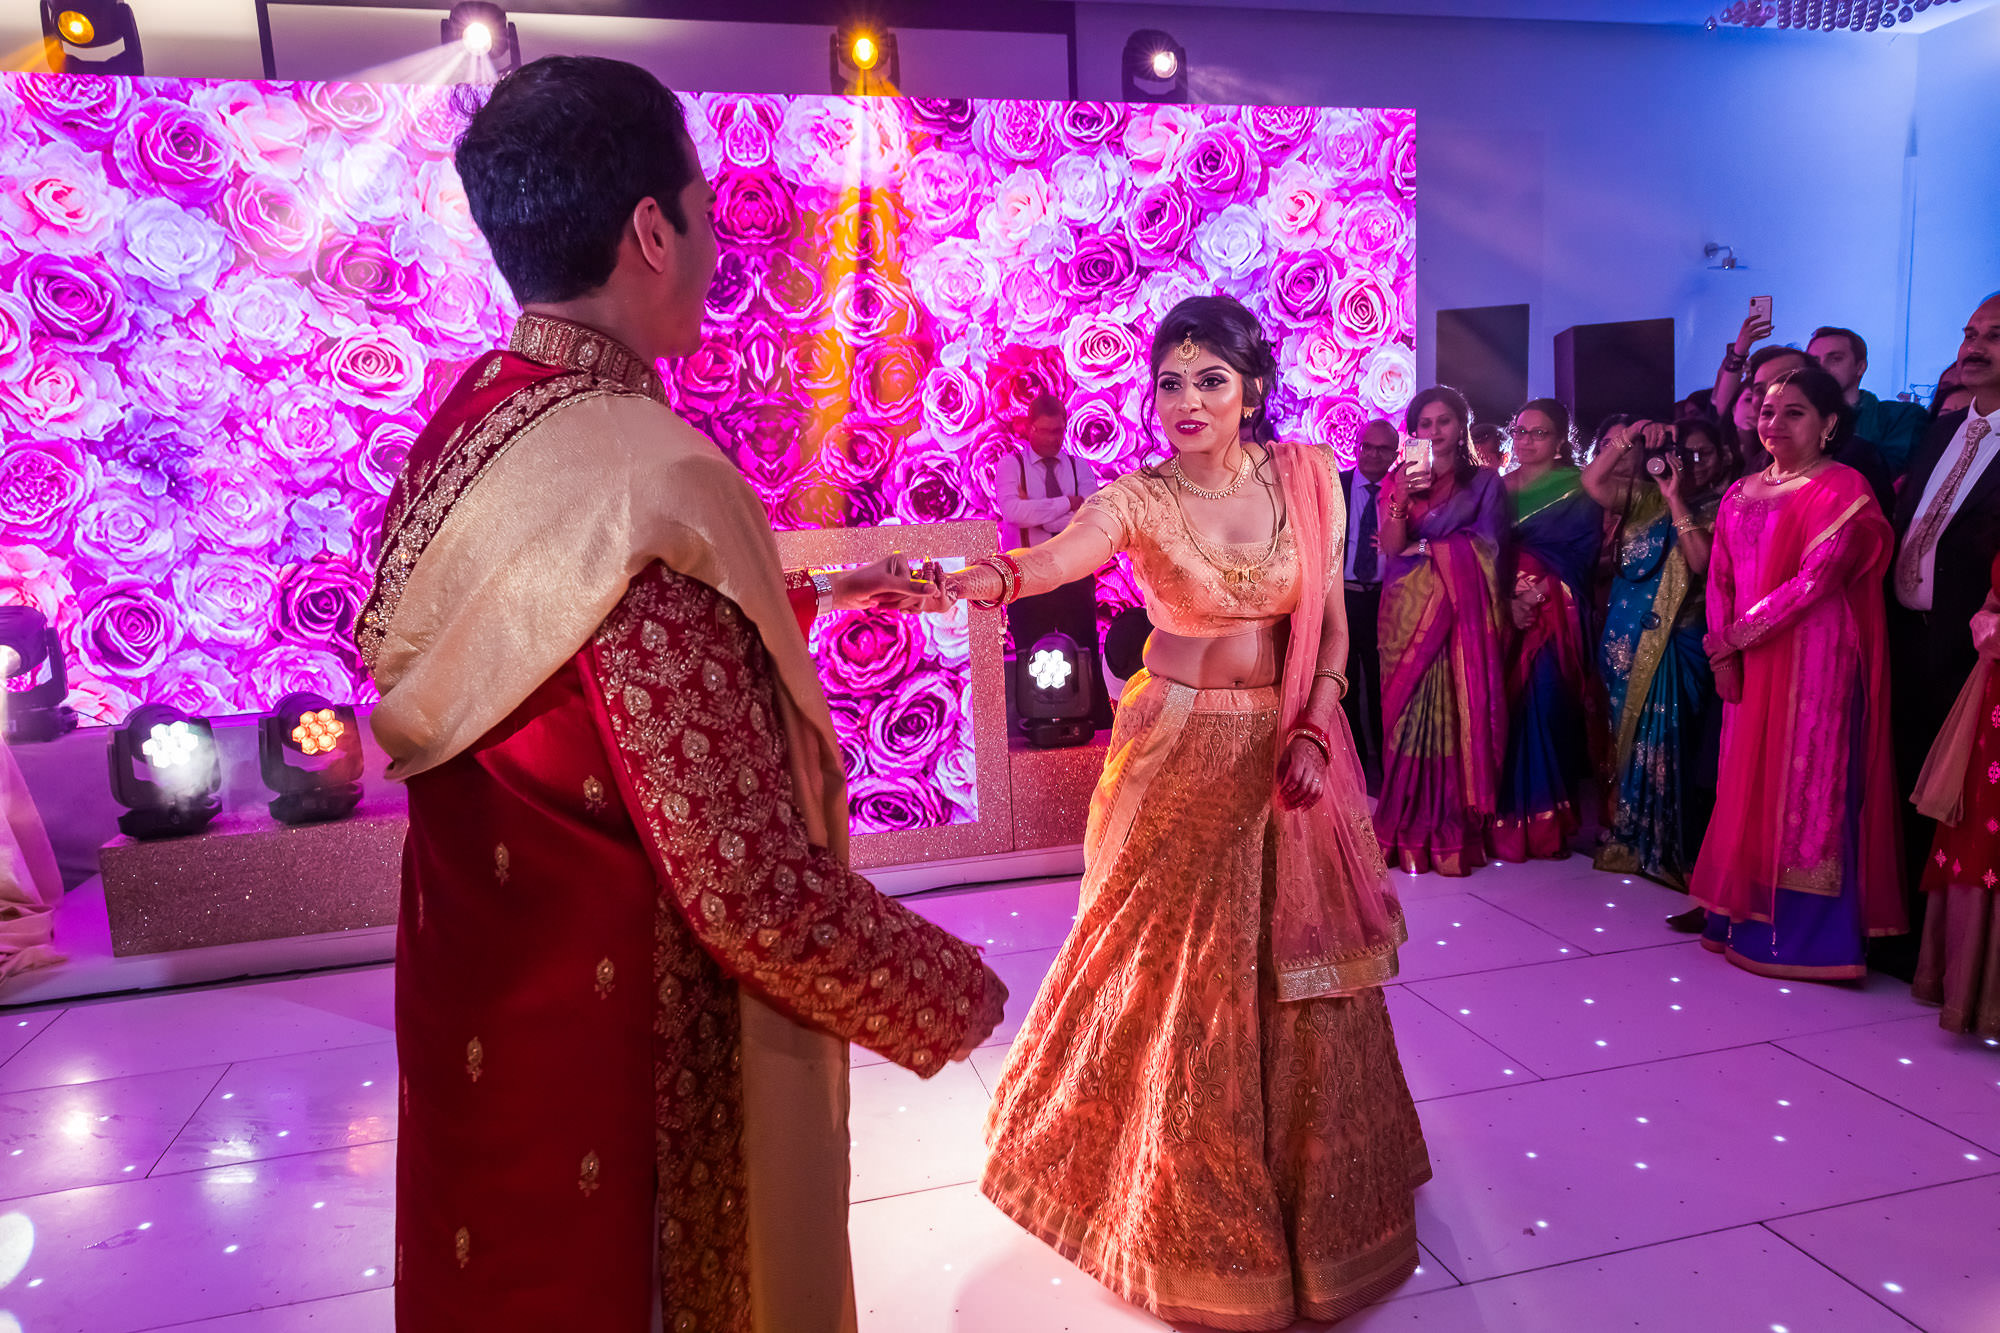 asian-wedding-hindu-tamil-photographer-heythorpe-oxford-0108.jpg